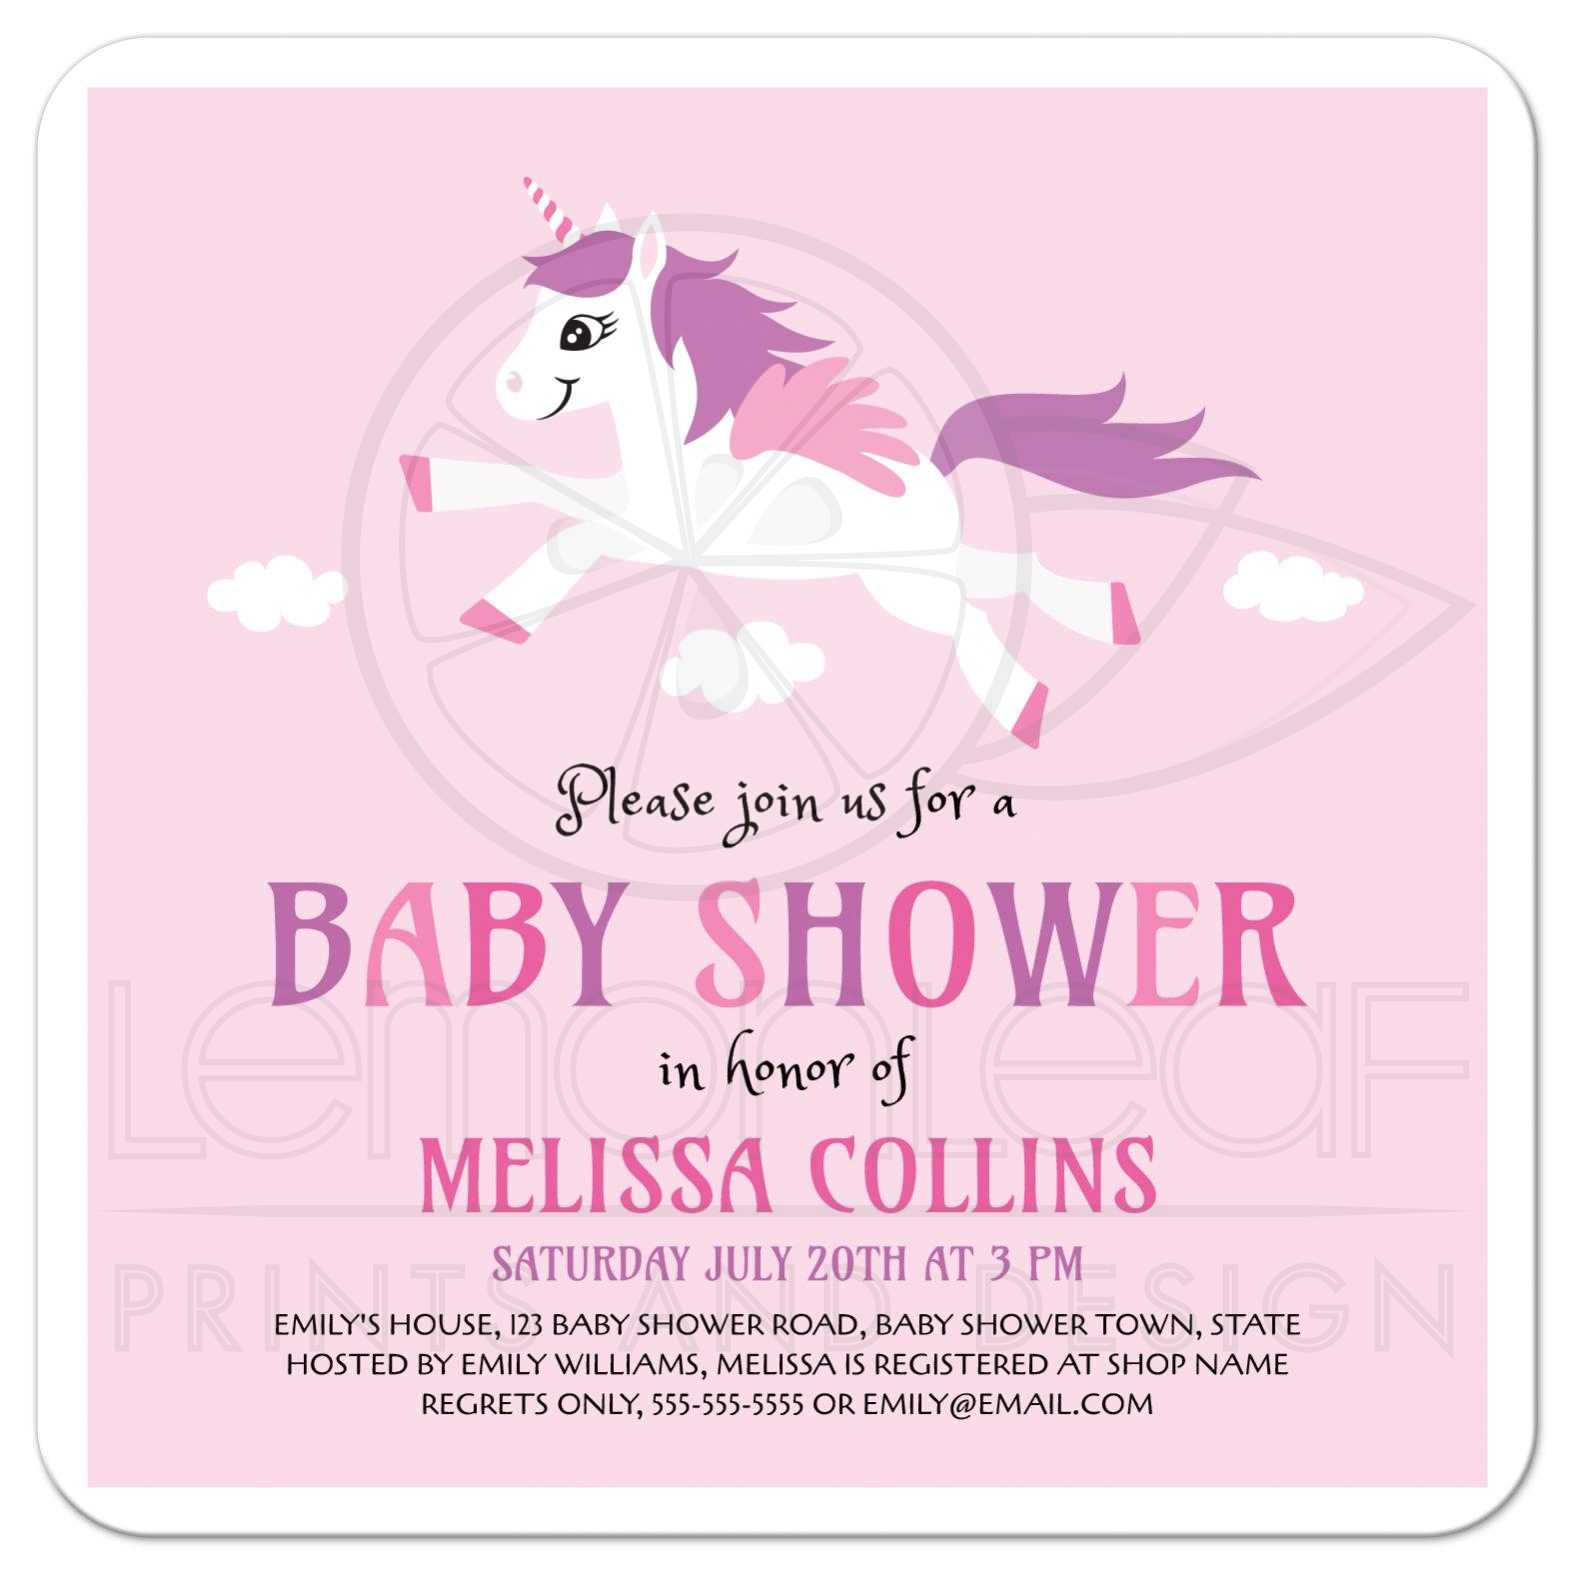 Cute unicorn baby shower invitation, pink and purple for girls